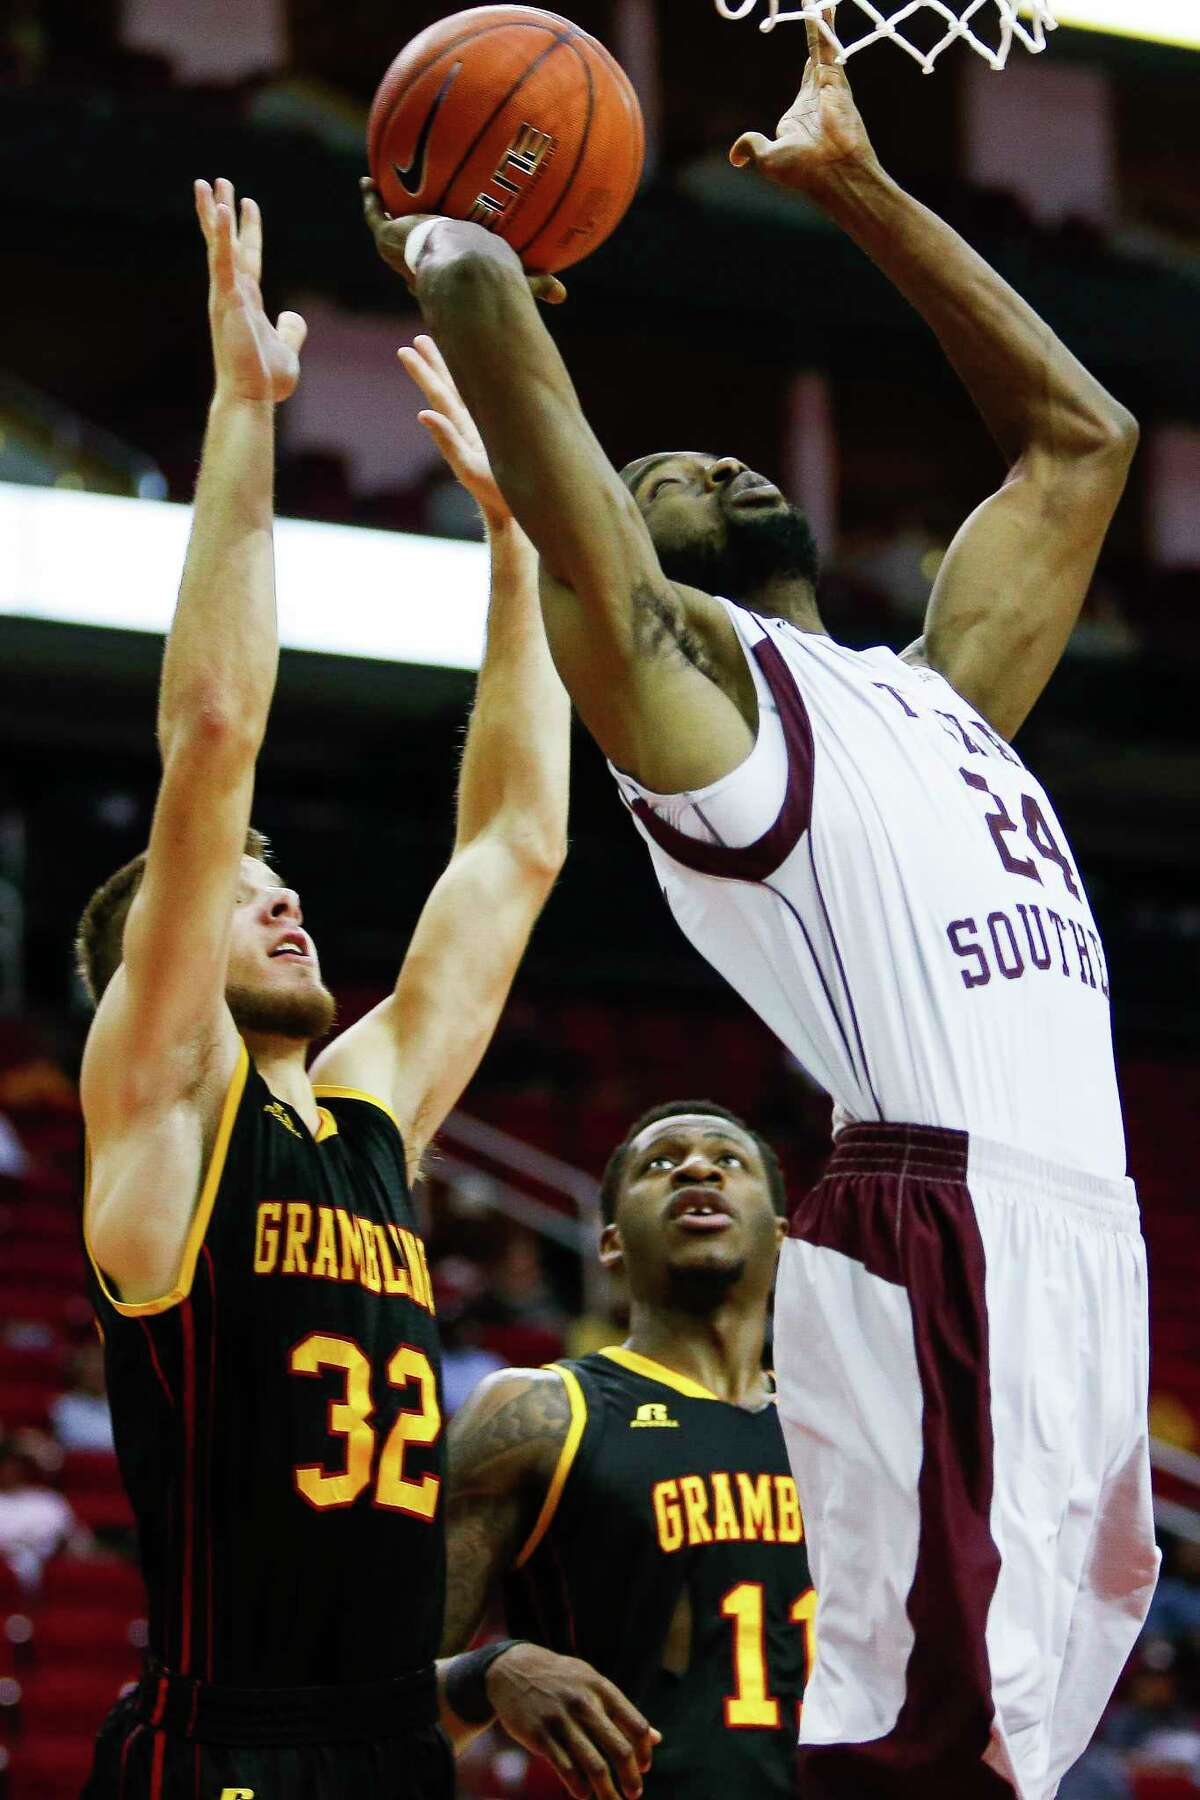 Texas Southern Tigers center Marvin Jones (24) puts up a shot past Grambling State Tigers guard Drake Wilks (32) as the Texas Southern Tigers take on the Grambling State Tigers during the SWAC Basketball Tournament semifinals at the Toyota Center Friday, March 10, 2017 in Houston.